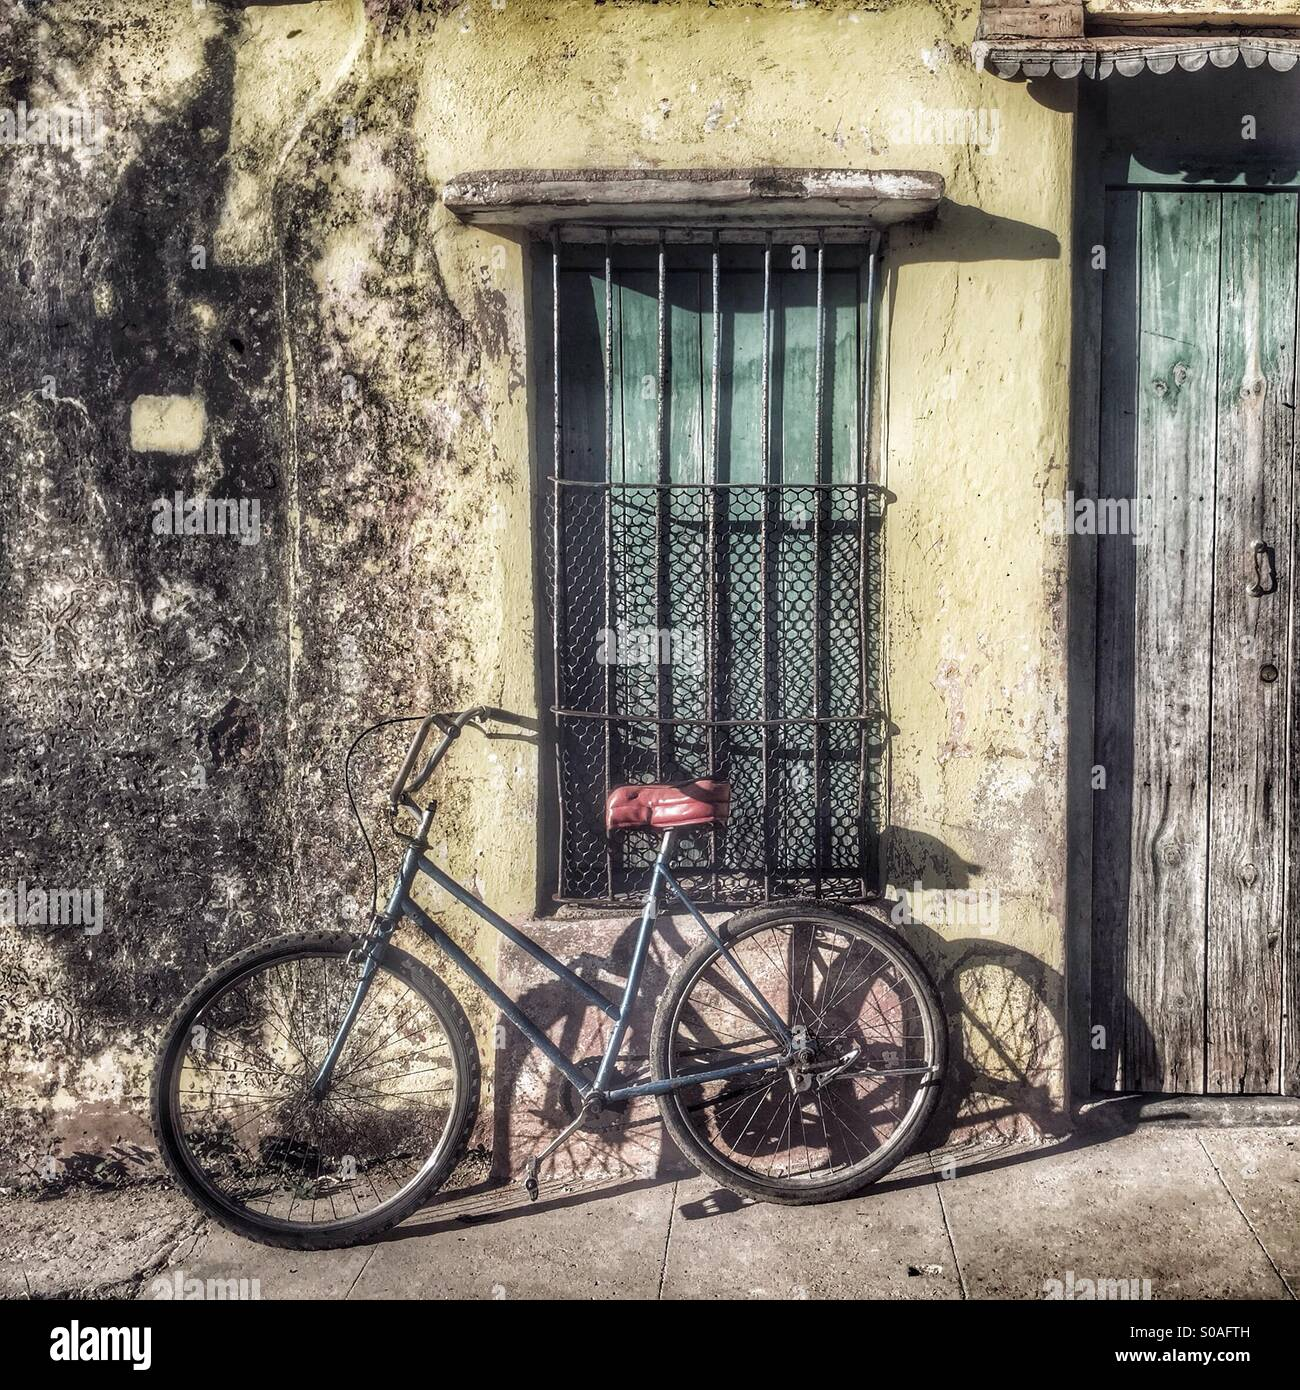 Bicycle leaning and casting a shadow against a grubby shuttered window walled property. Trinidad Sancti Spiritus - Stock Image